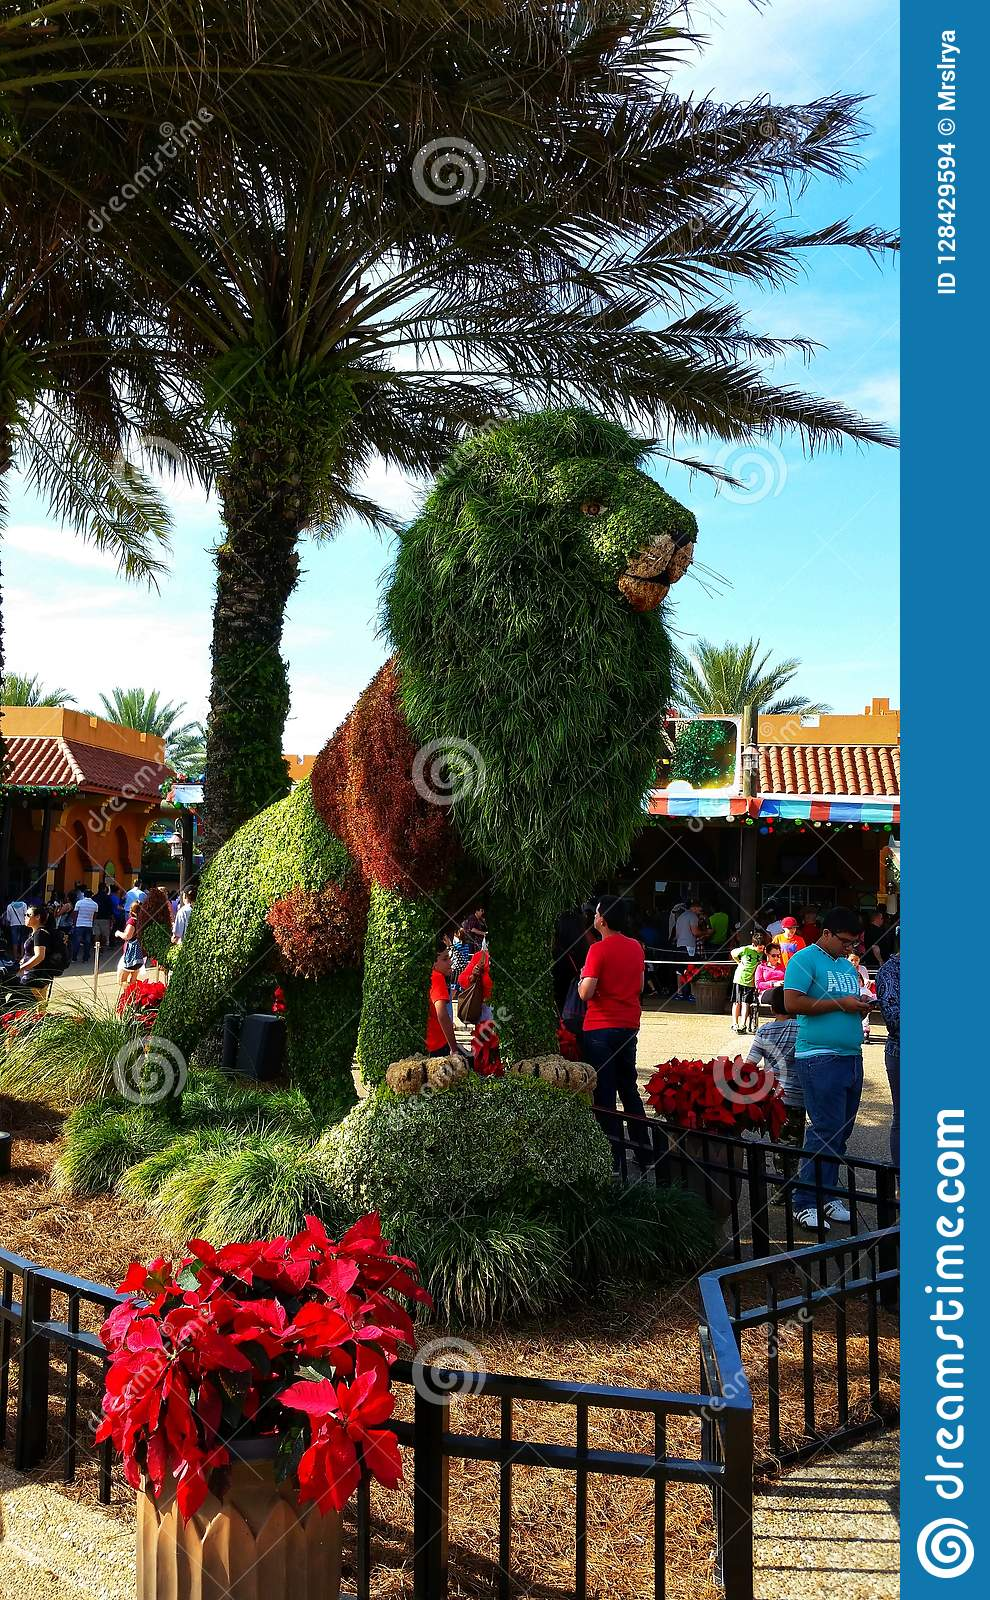 516 Topiary Garden Entrance Photos Free Royalty Free Stock Photos From Dreamstime